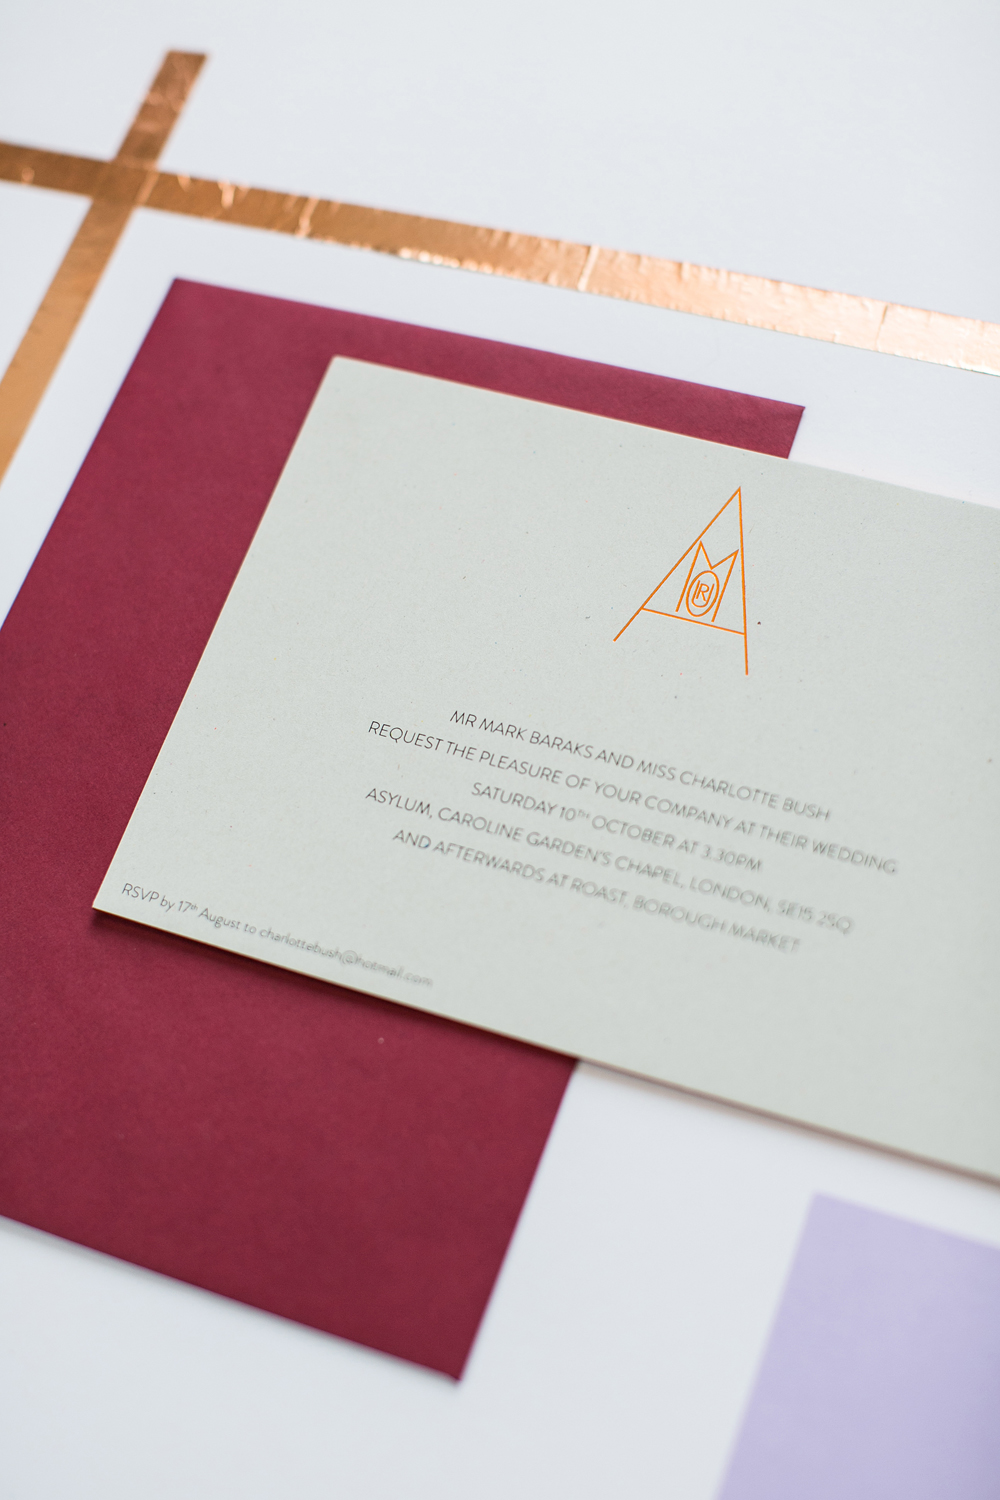 Bespoke wedding stationery, copper foil, invitation, triplexed, amour, Save the Date, information, London Wedding, Roast